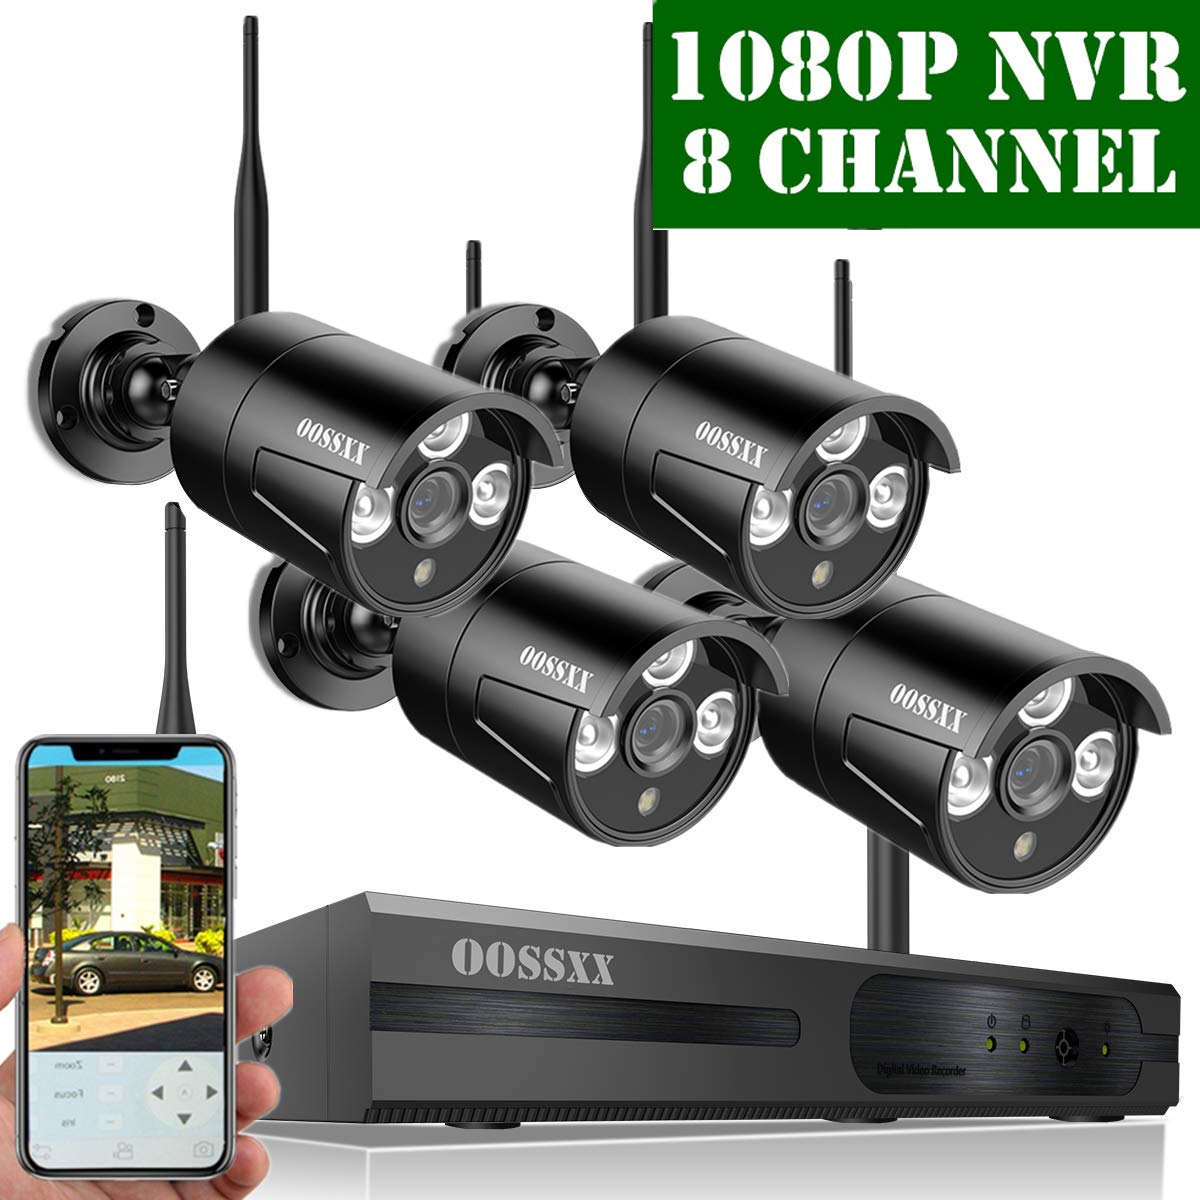 2019 Update OOSSXX HD 1080P 8-Channel Wireless Security Camera System,4 pcs 720P 1.0 Megapixel Wireless Weatherproof Bullet IP Cameras,Plug Play,70FT Night Vision,P2P,App, No Hard Drive